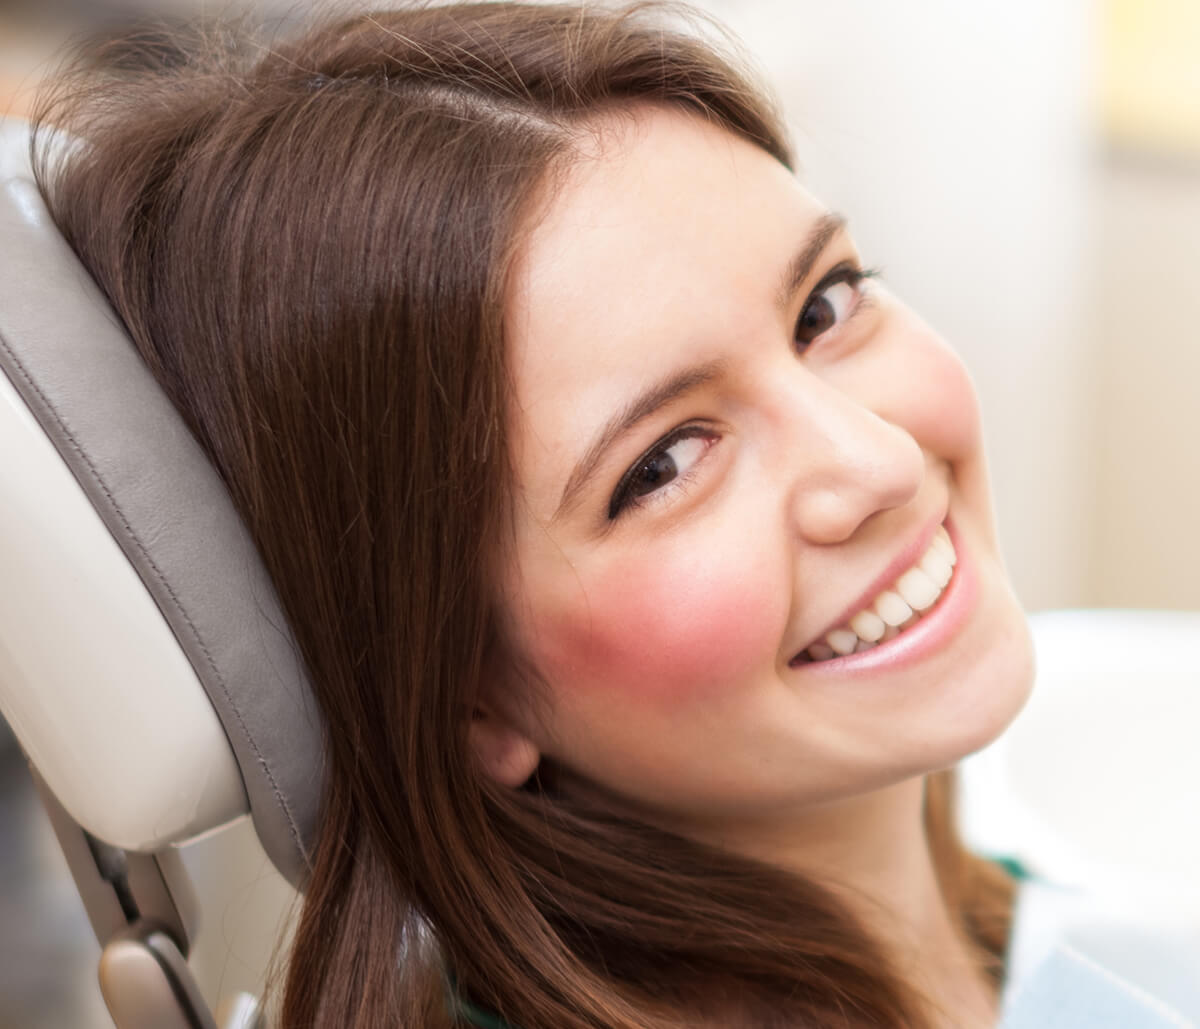 Are CEREC Teeth Crowns Better than Normal Crowns in Aliso Viejo, CA Area?